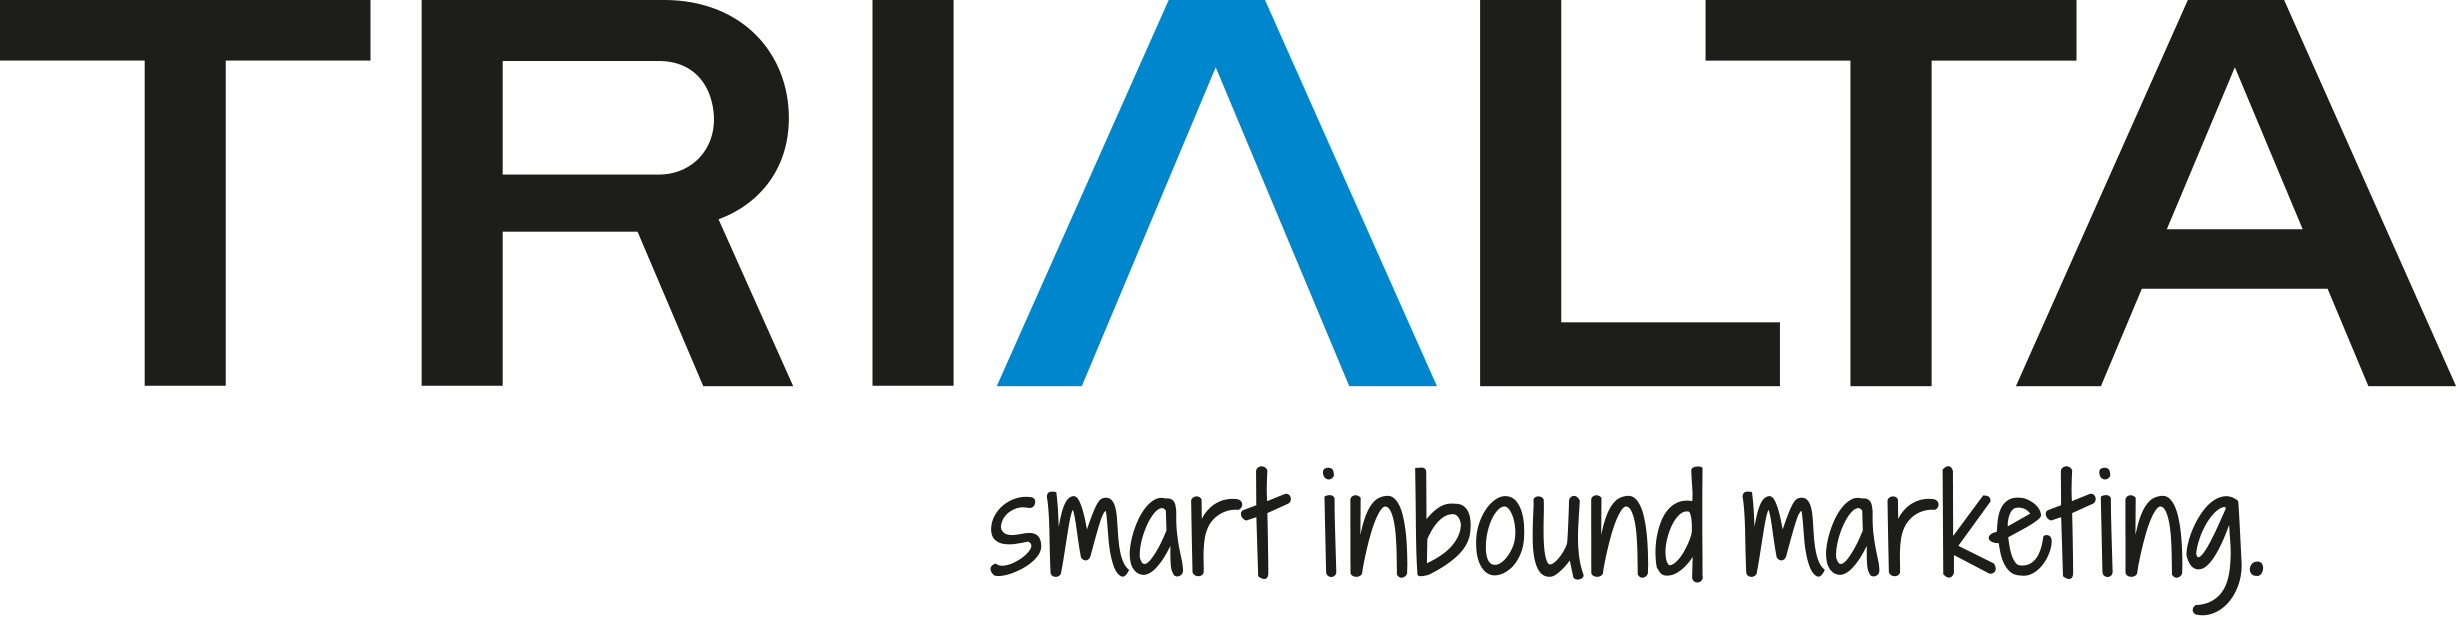 Smart Inbound-Marketing mit TRIALTA